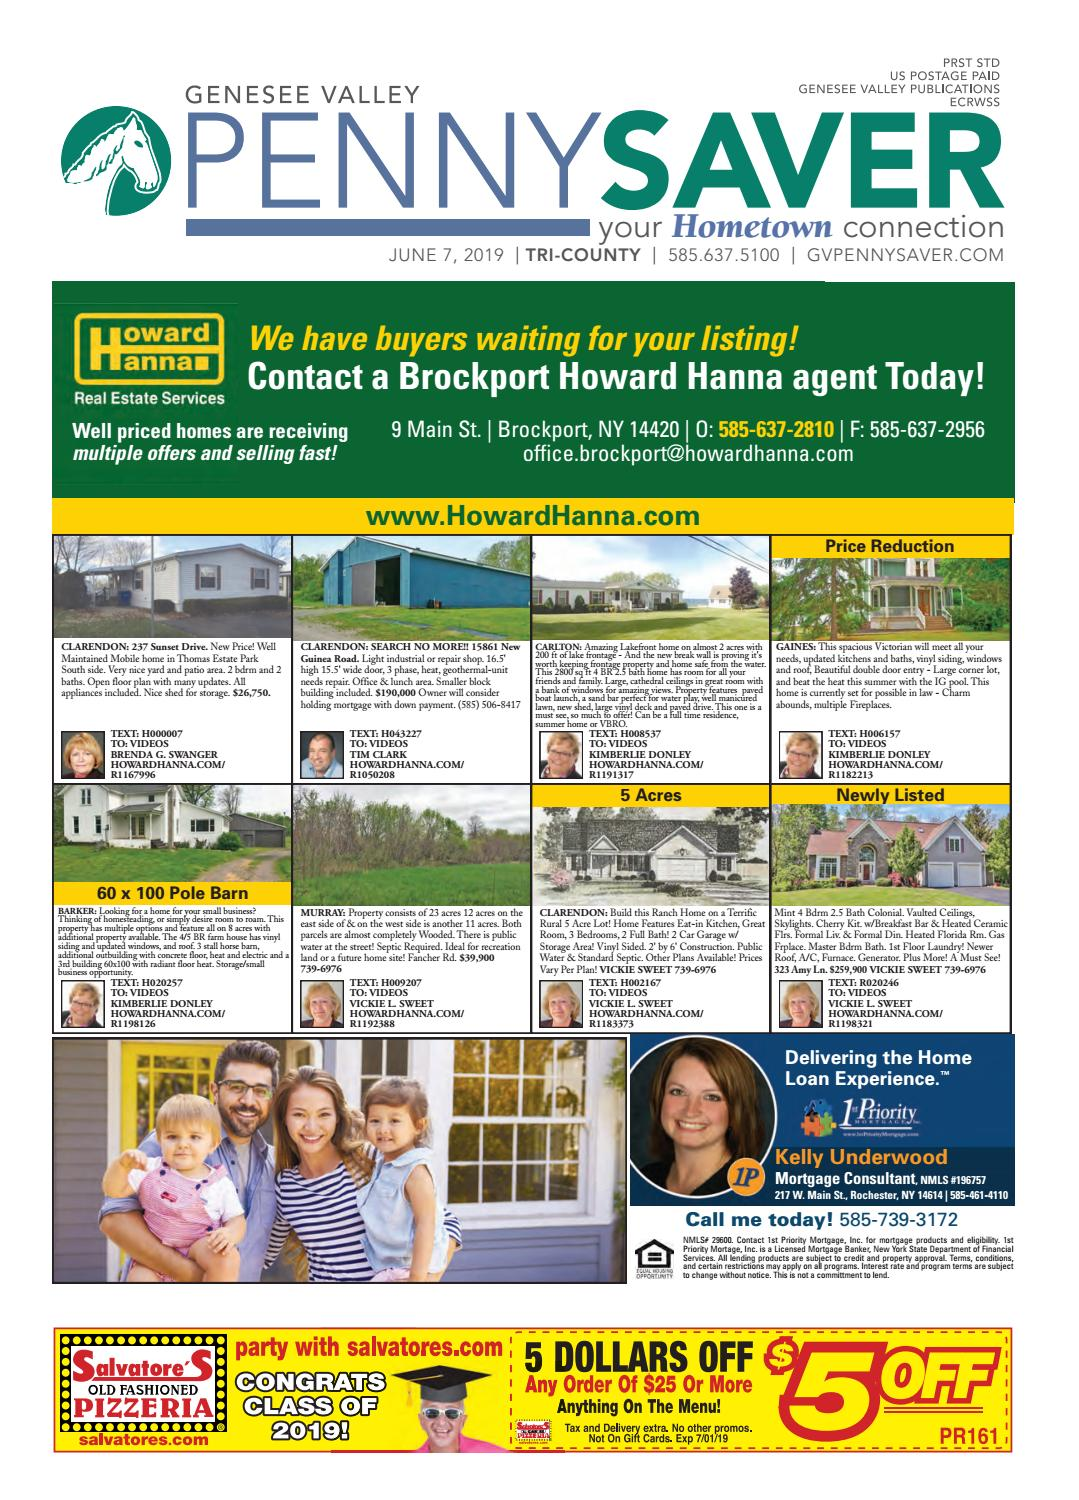 Tri-County Edition - Genesee Valley Penny Saver 6-7-2019 by